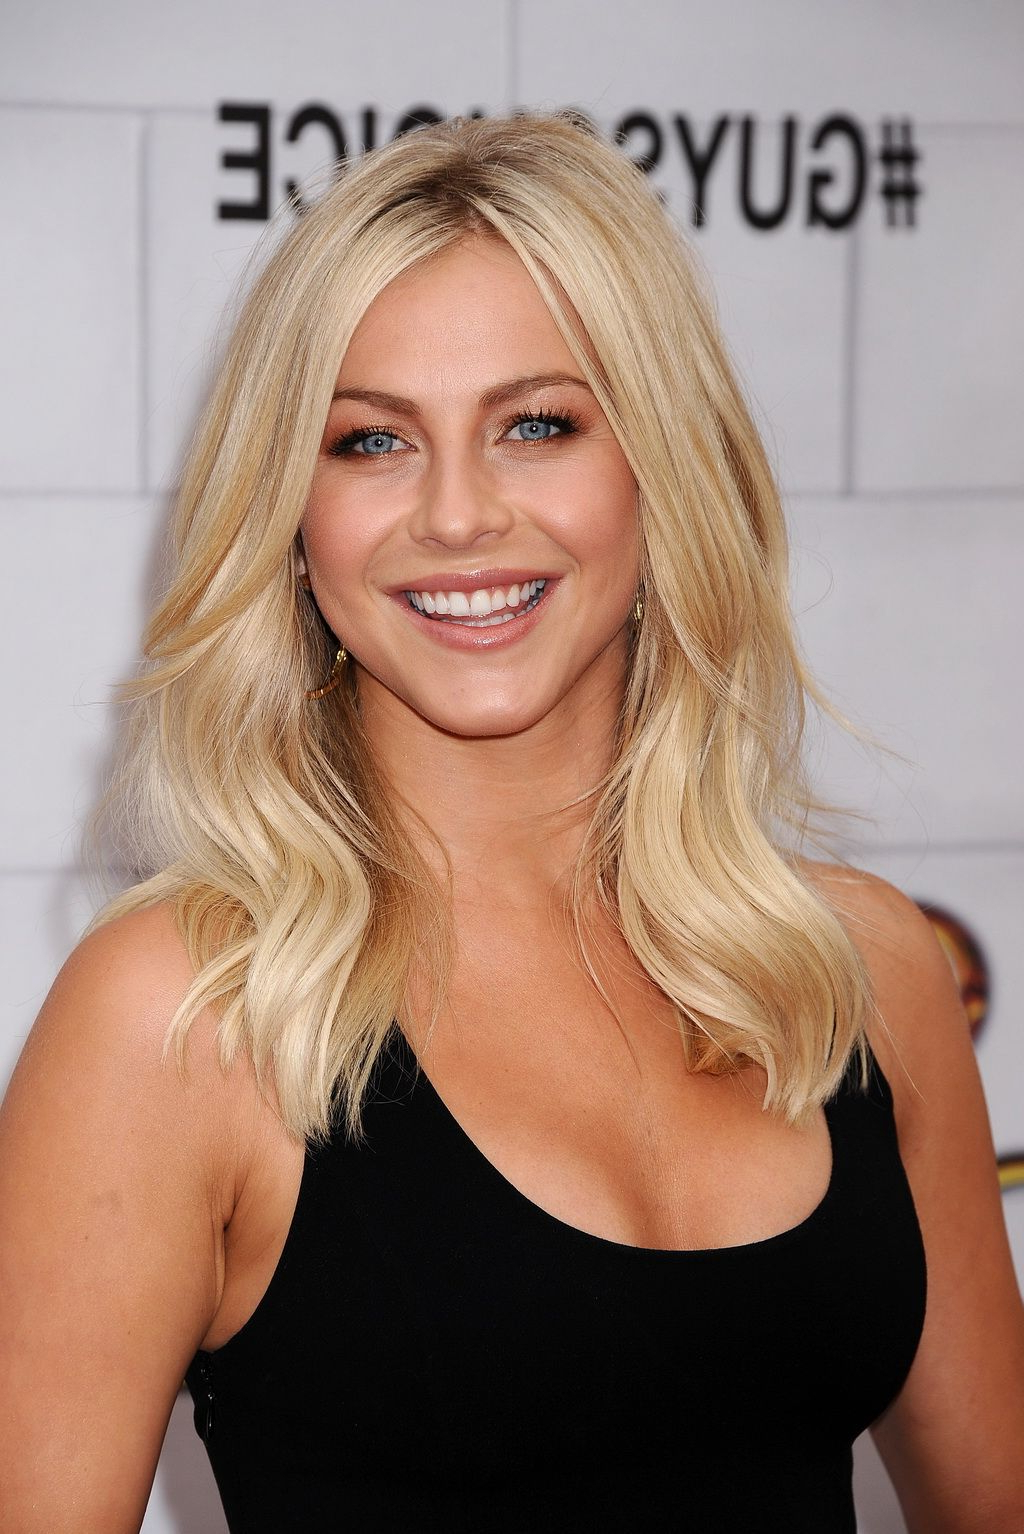 Images Of Julianne Hough – Bing Images (Gallery 5 of 20)